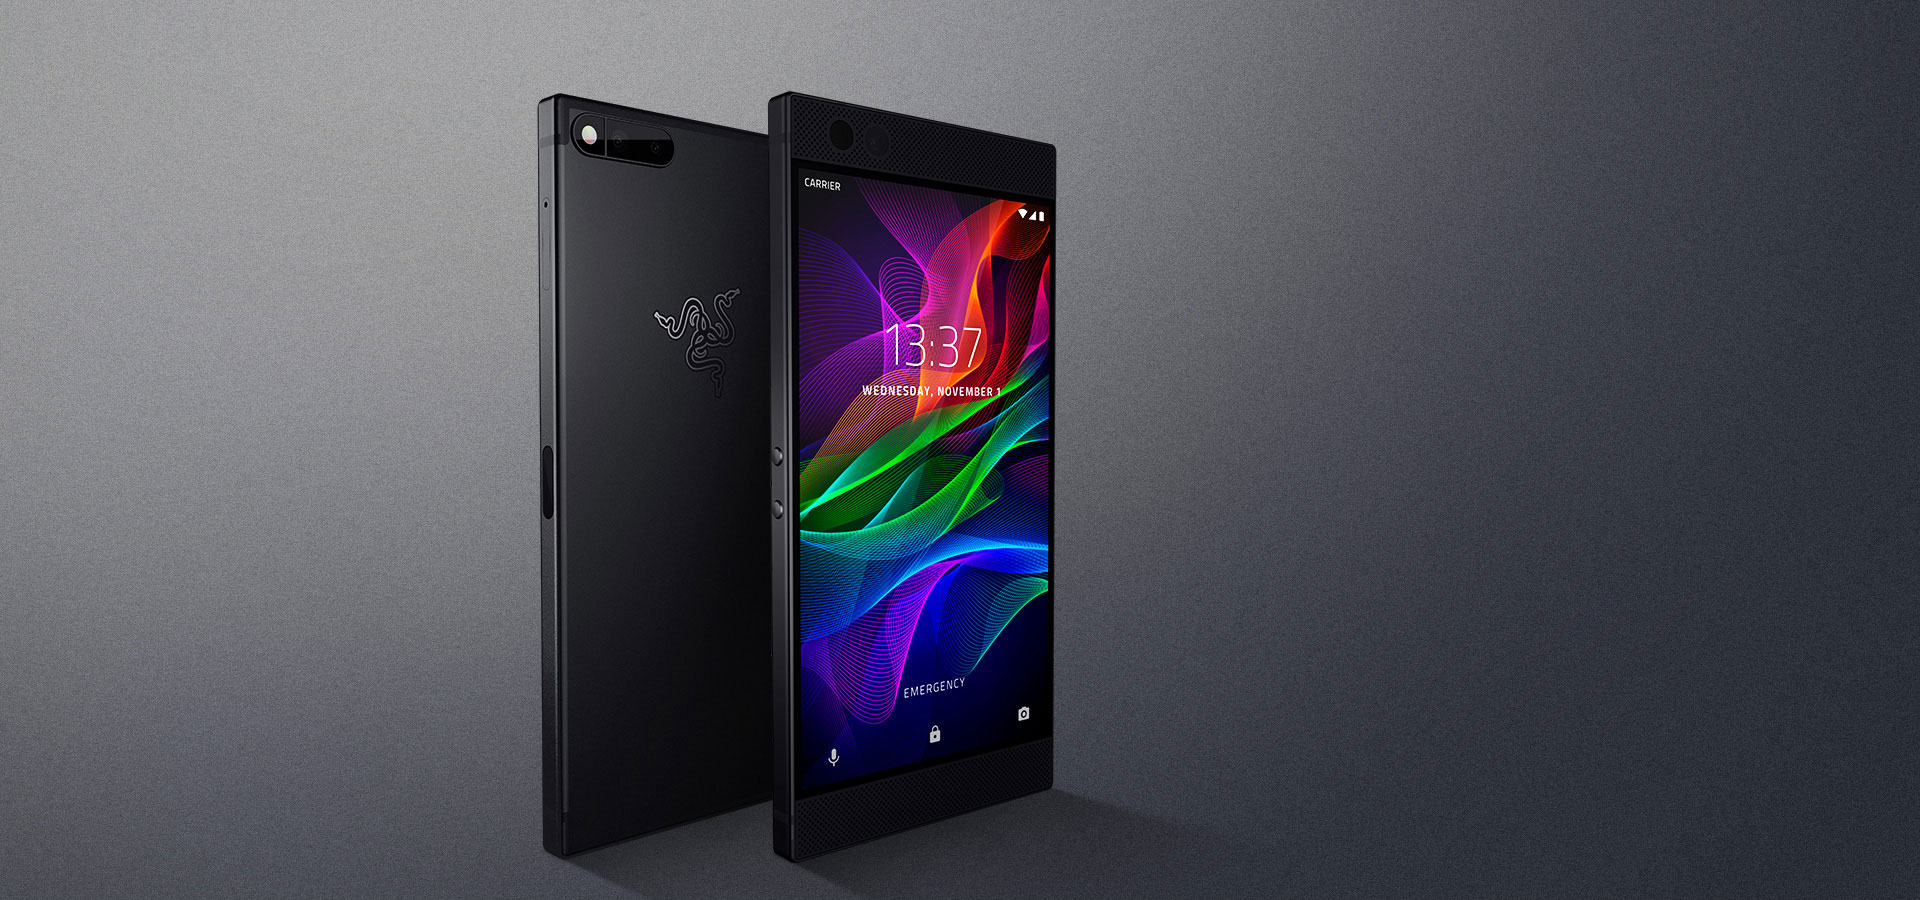 Singapore is the first country in Asia where Razer is launching its phone.